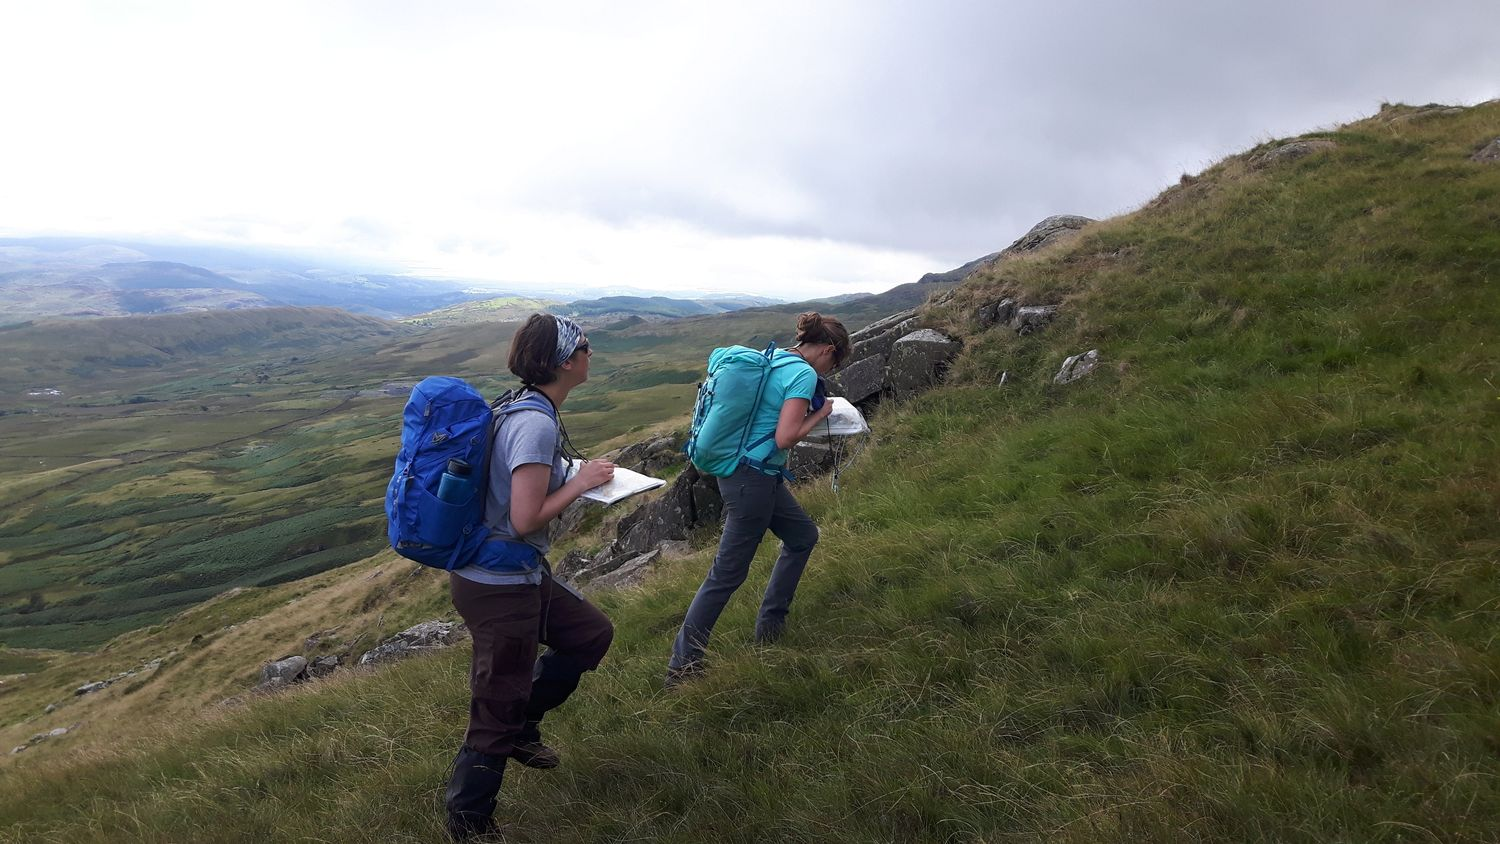 Mountain leader training candidates navigating in the mountains